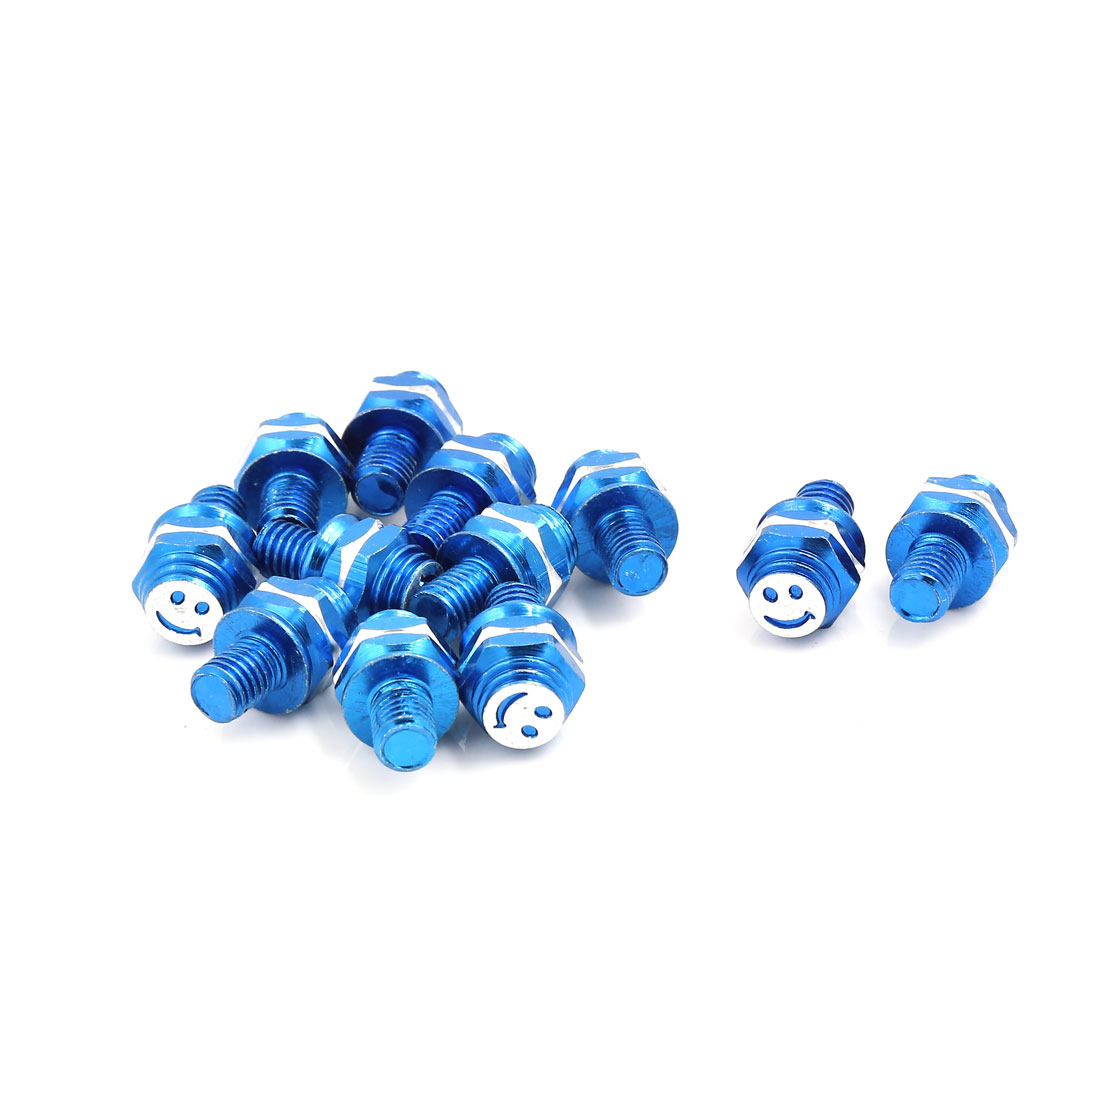 12 Pcs Blue Smiling Face Print License Plate Mounting Screw Decor 7mm Thread Dia